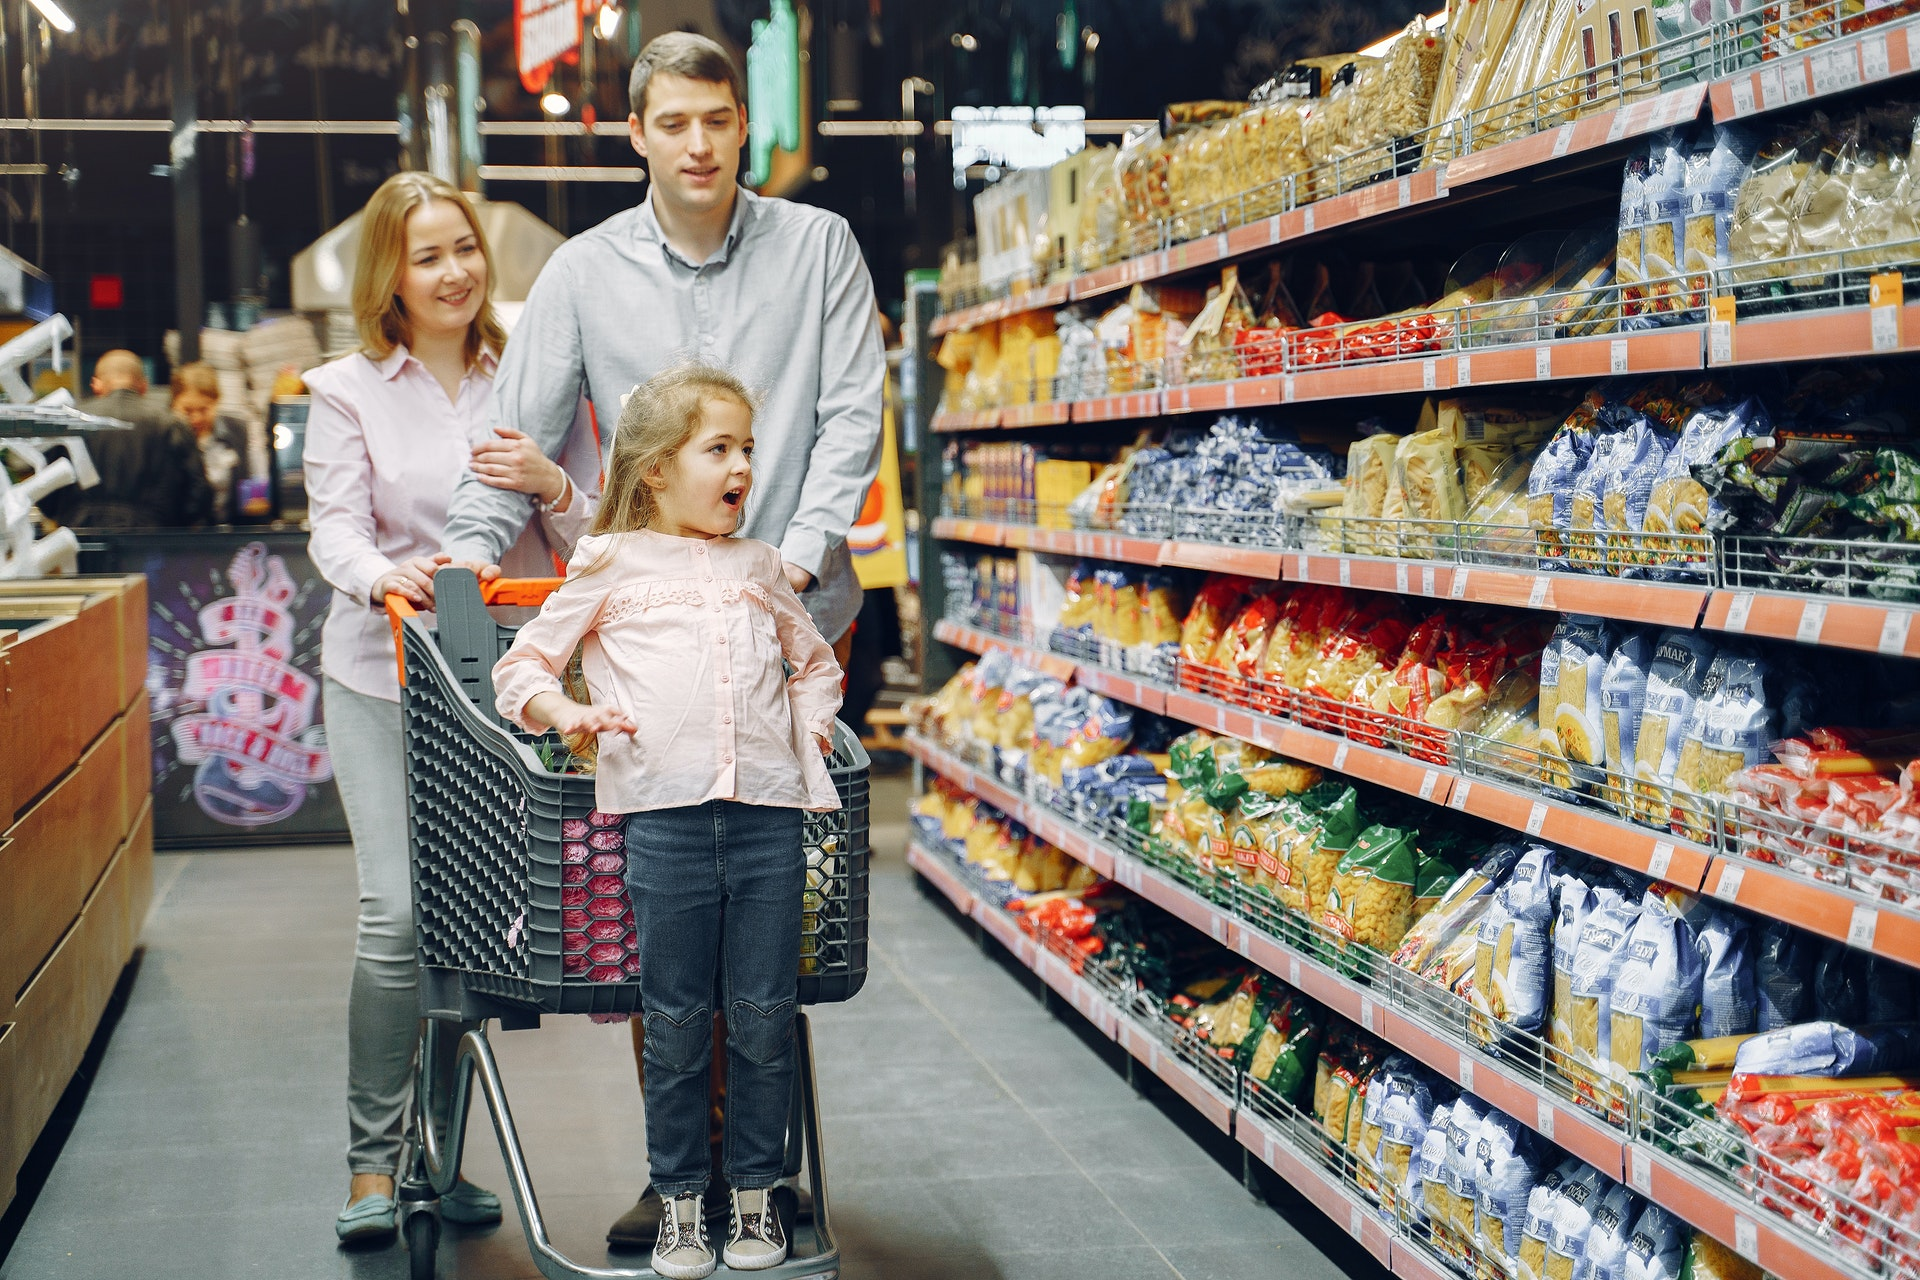 The importance of customer experience in retail